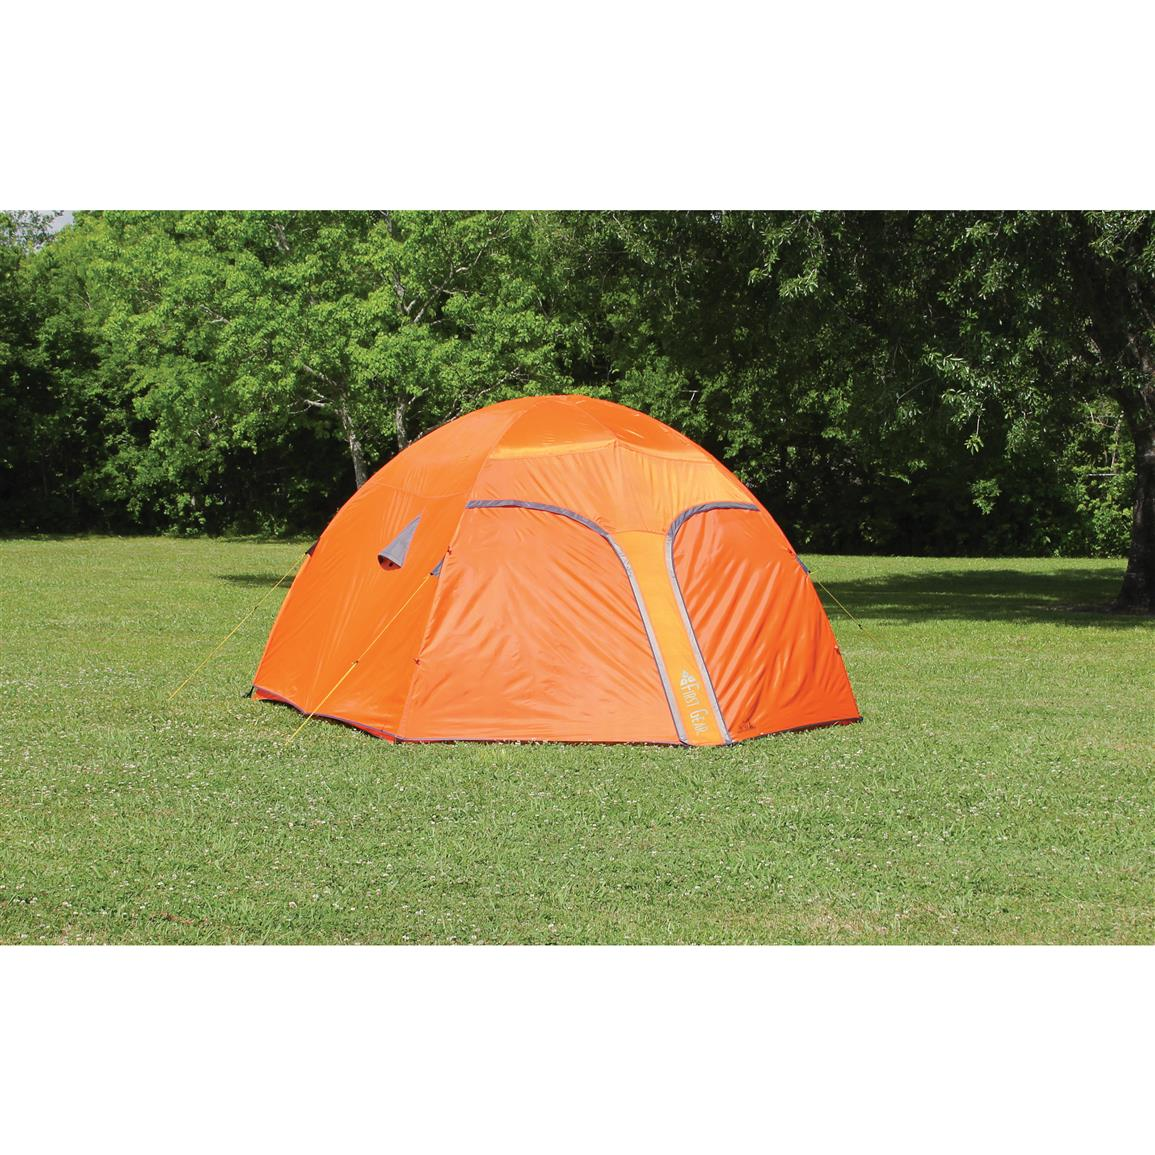 Texsports Orange Mountain Tent, 5 Person • with Full rainfly